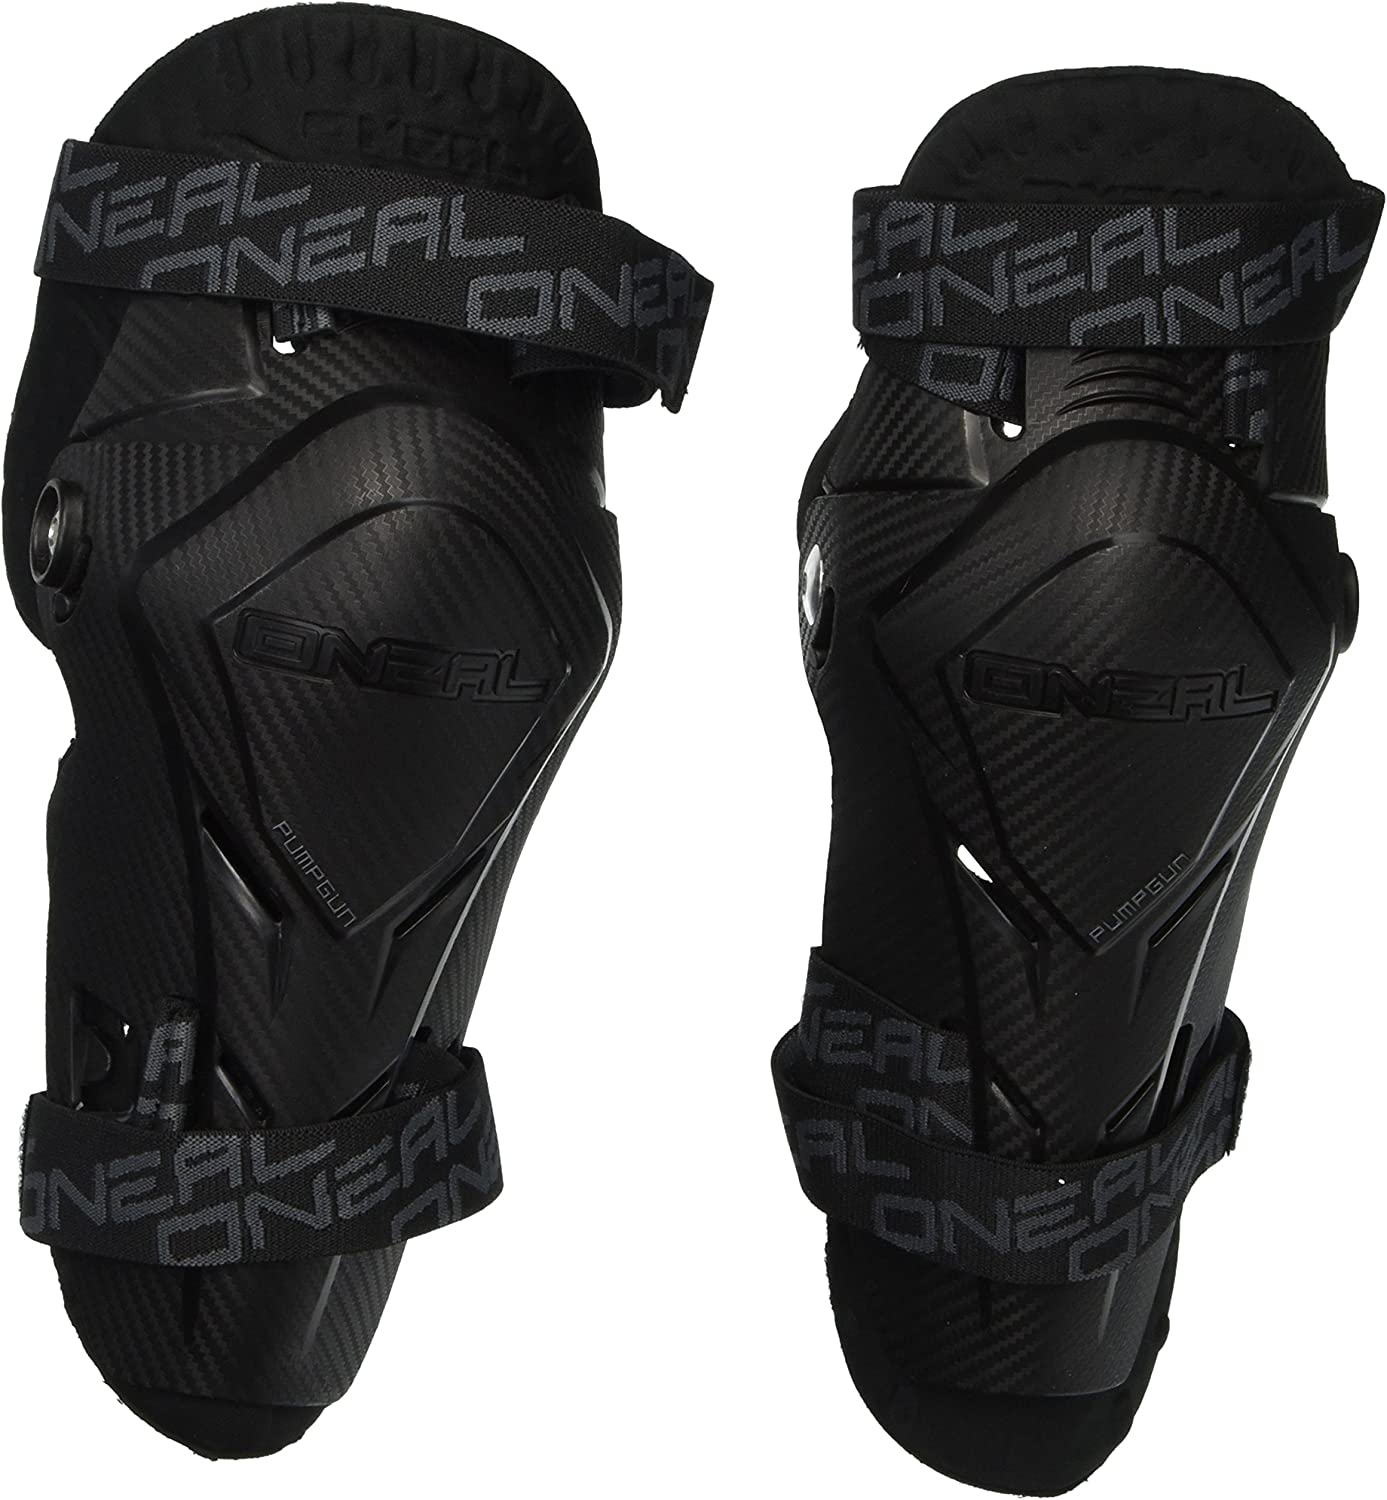 Small ONeal unisex-adult DIRT Knee Guard black S